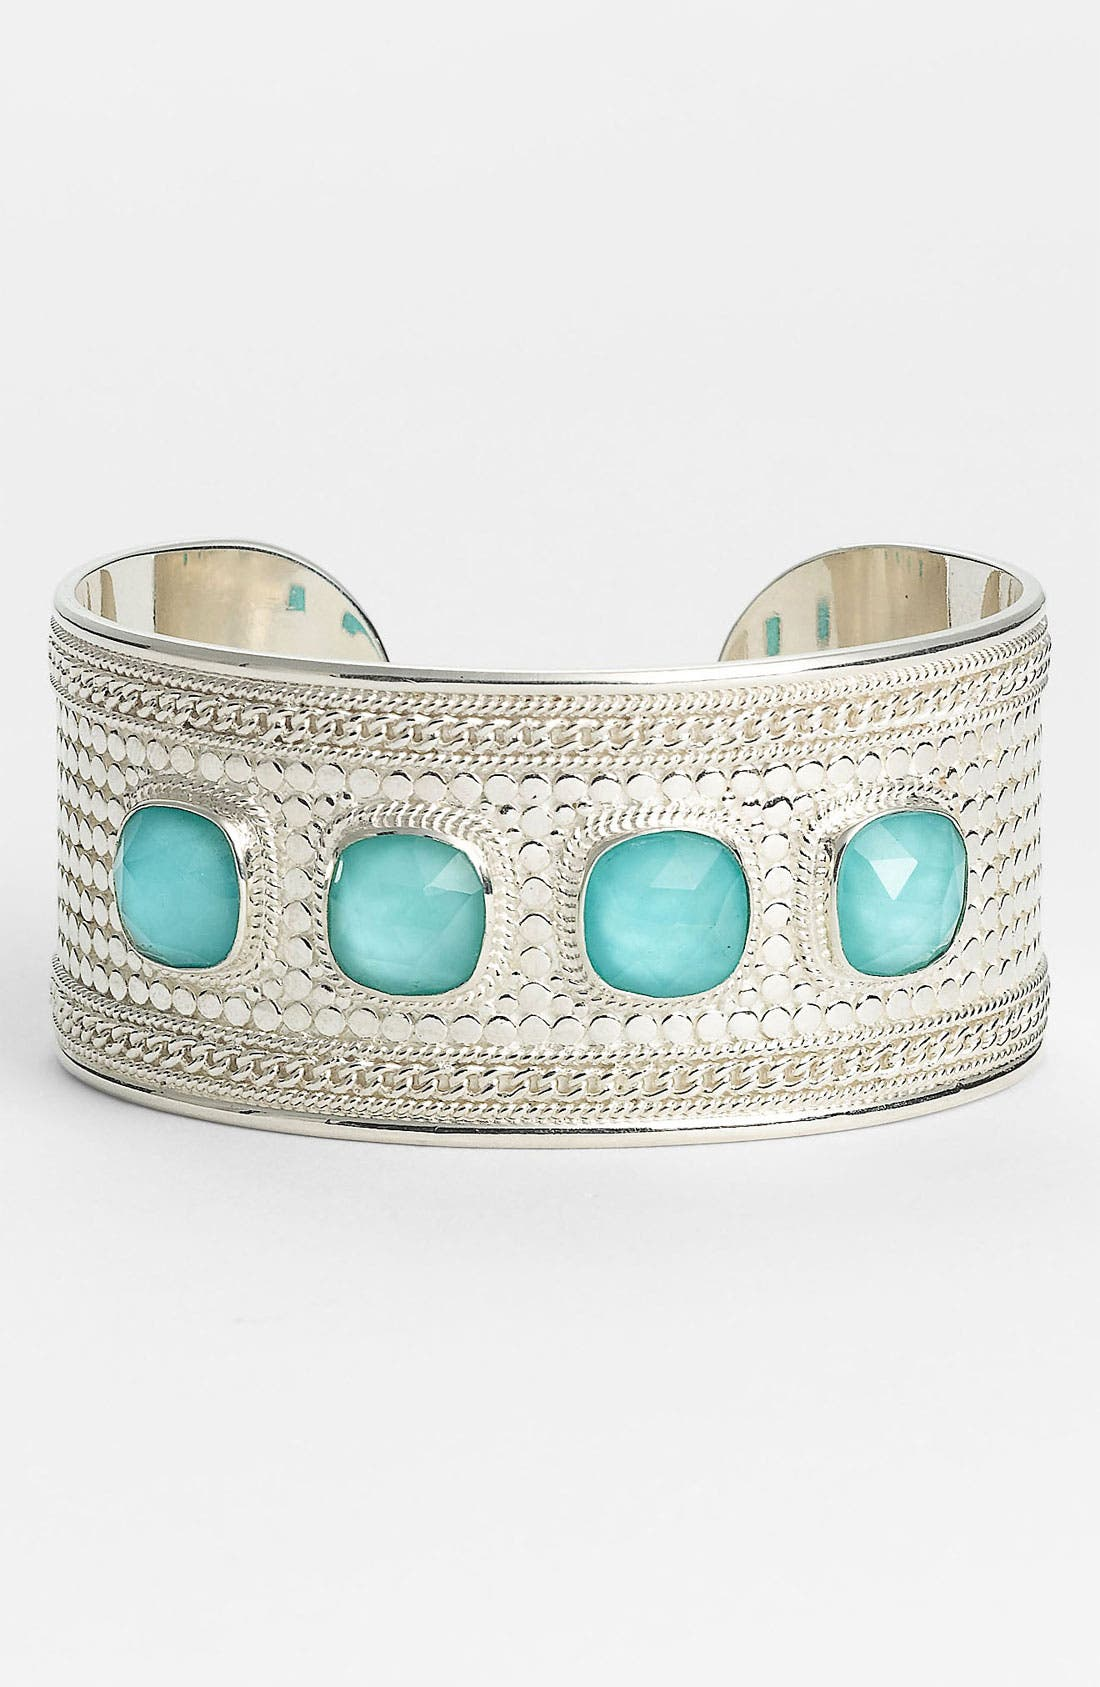 Alternate Image 1 Selected - Anna Beck 'Gili' Cuff